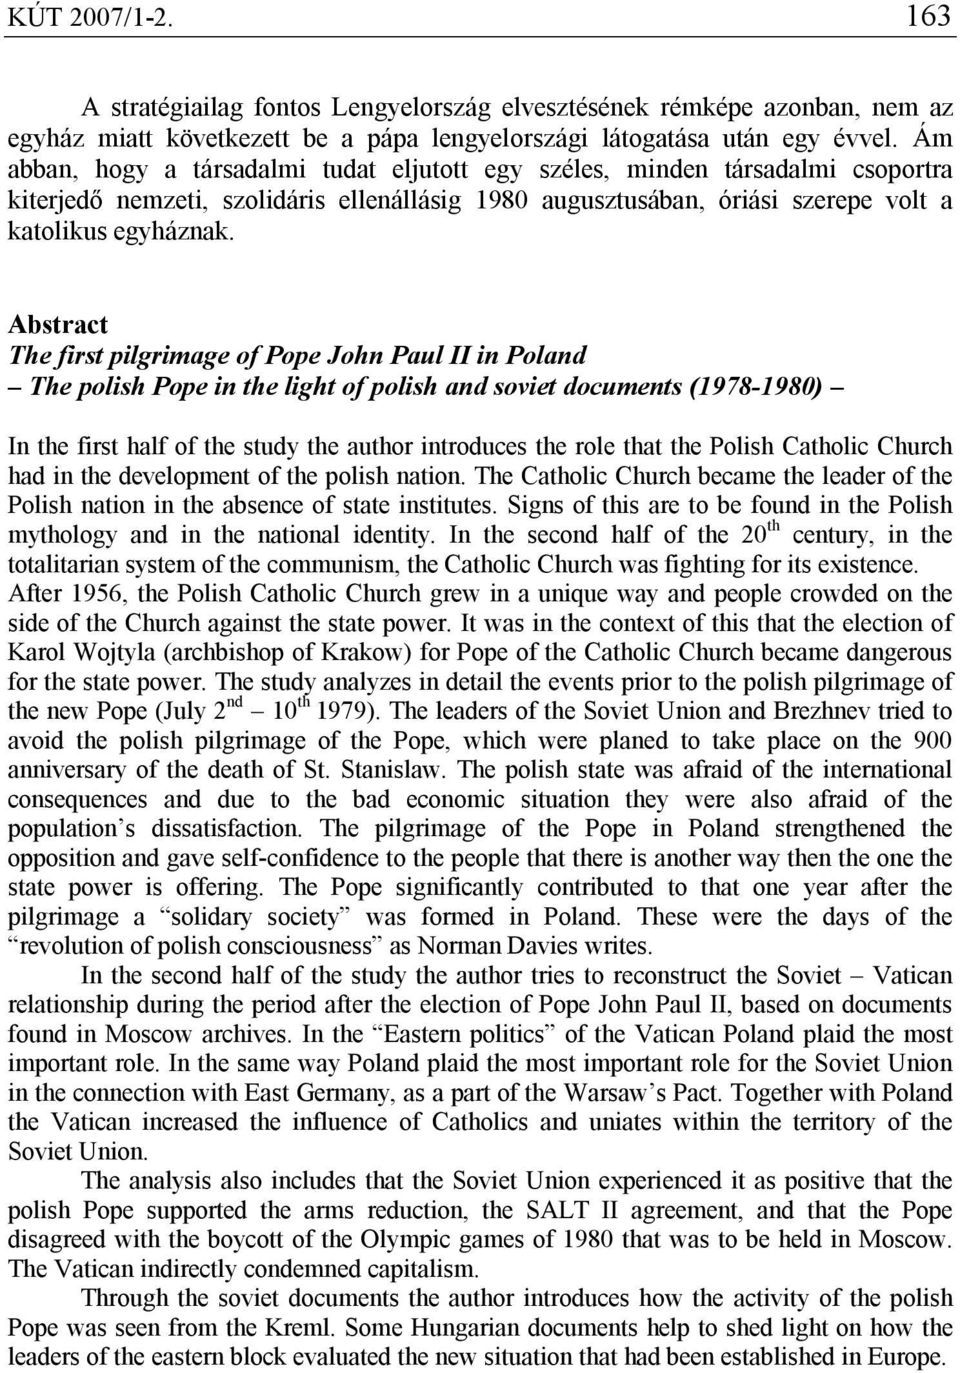 Abstract The first pilgrimage of Pope John Paul II in Poland The polish Pope in the light of polish and soviet documents (1978-1980) In the first half of the study the author introduces the role that